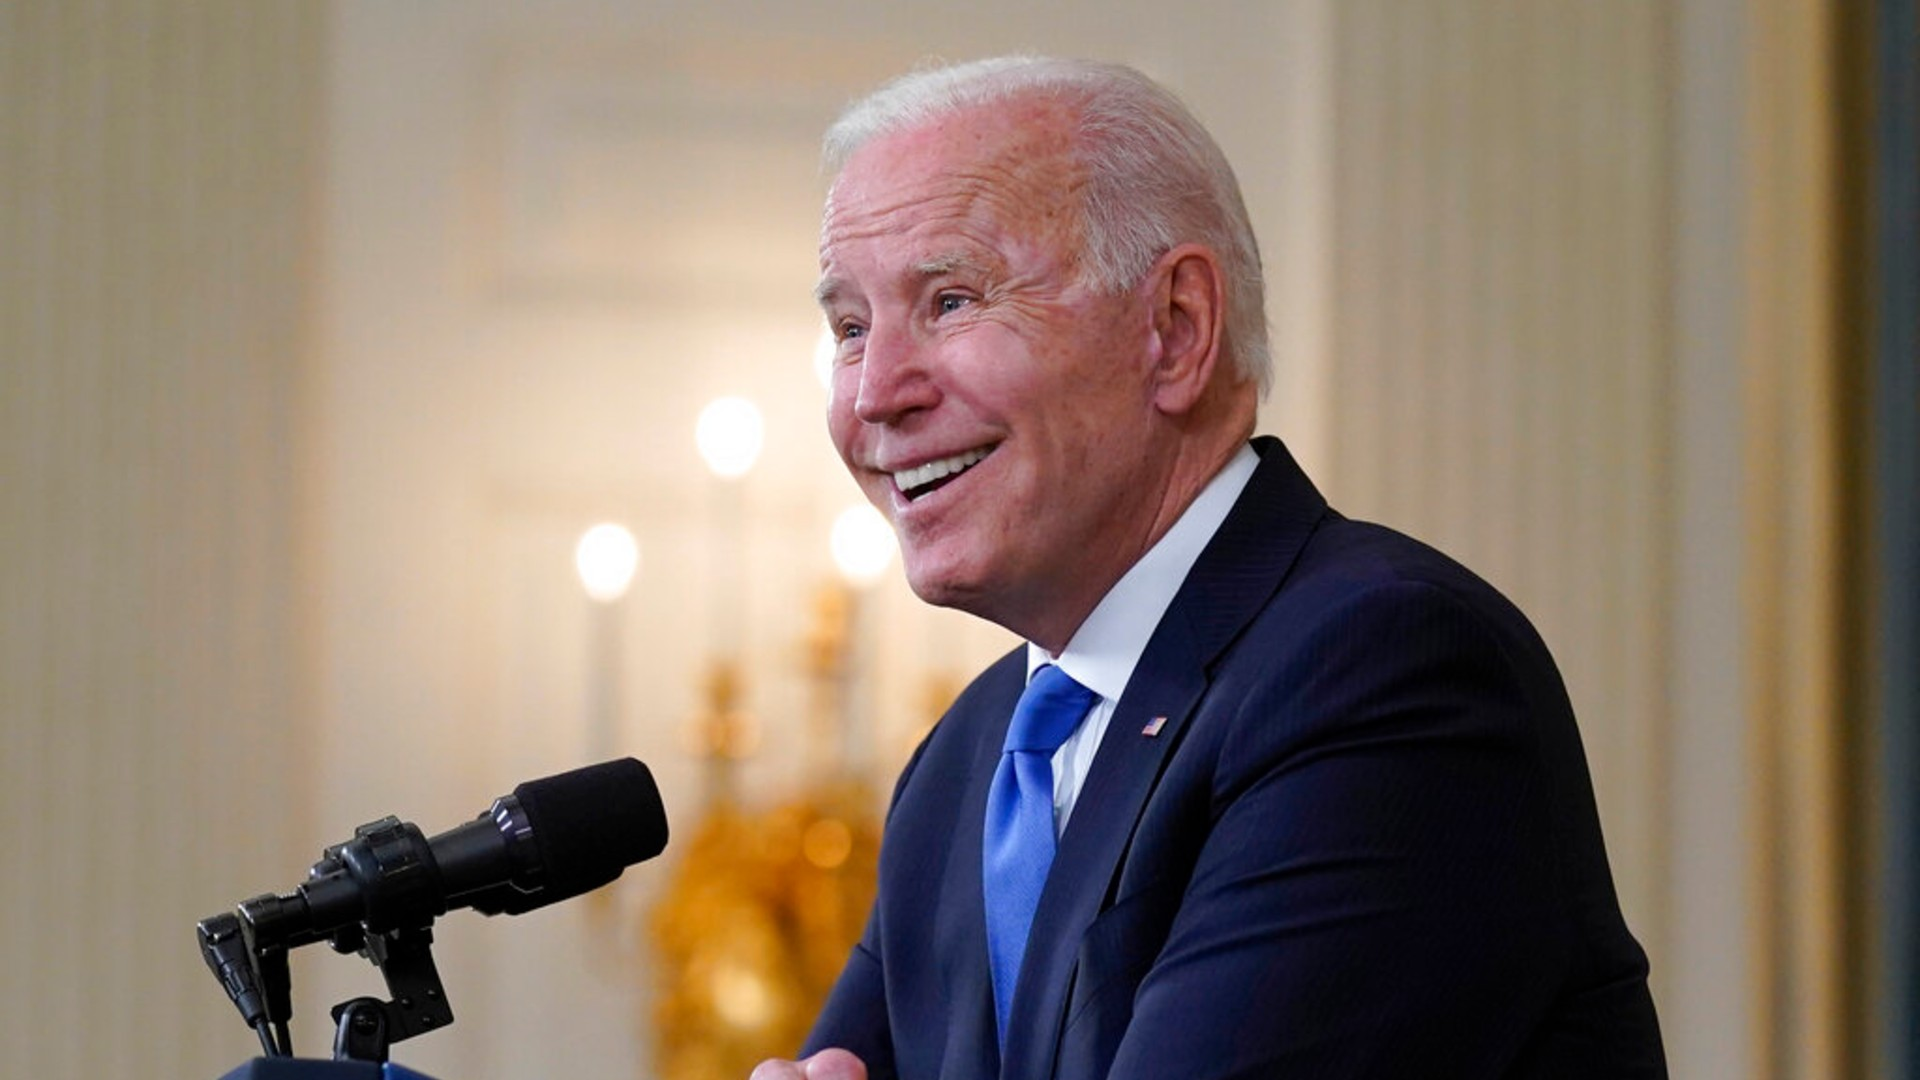 In this May 5, 2021, file photo President Joe Biden takes questions from reporters as he speaks about the American Rescue Plan, in the State Dining Room of the White House in Washington. (AP Photo/Evan Vucci, File)